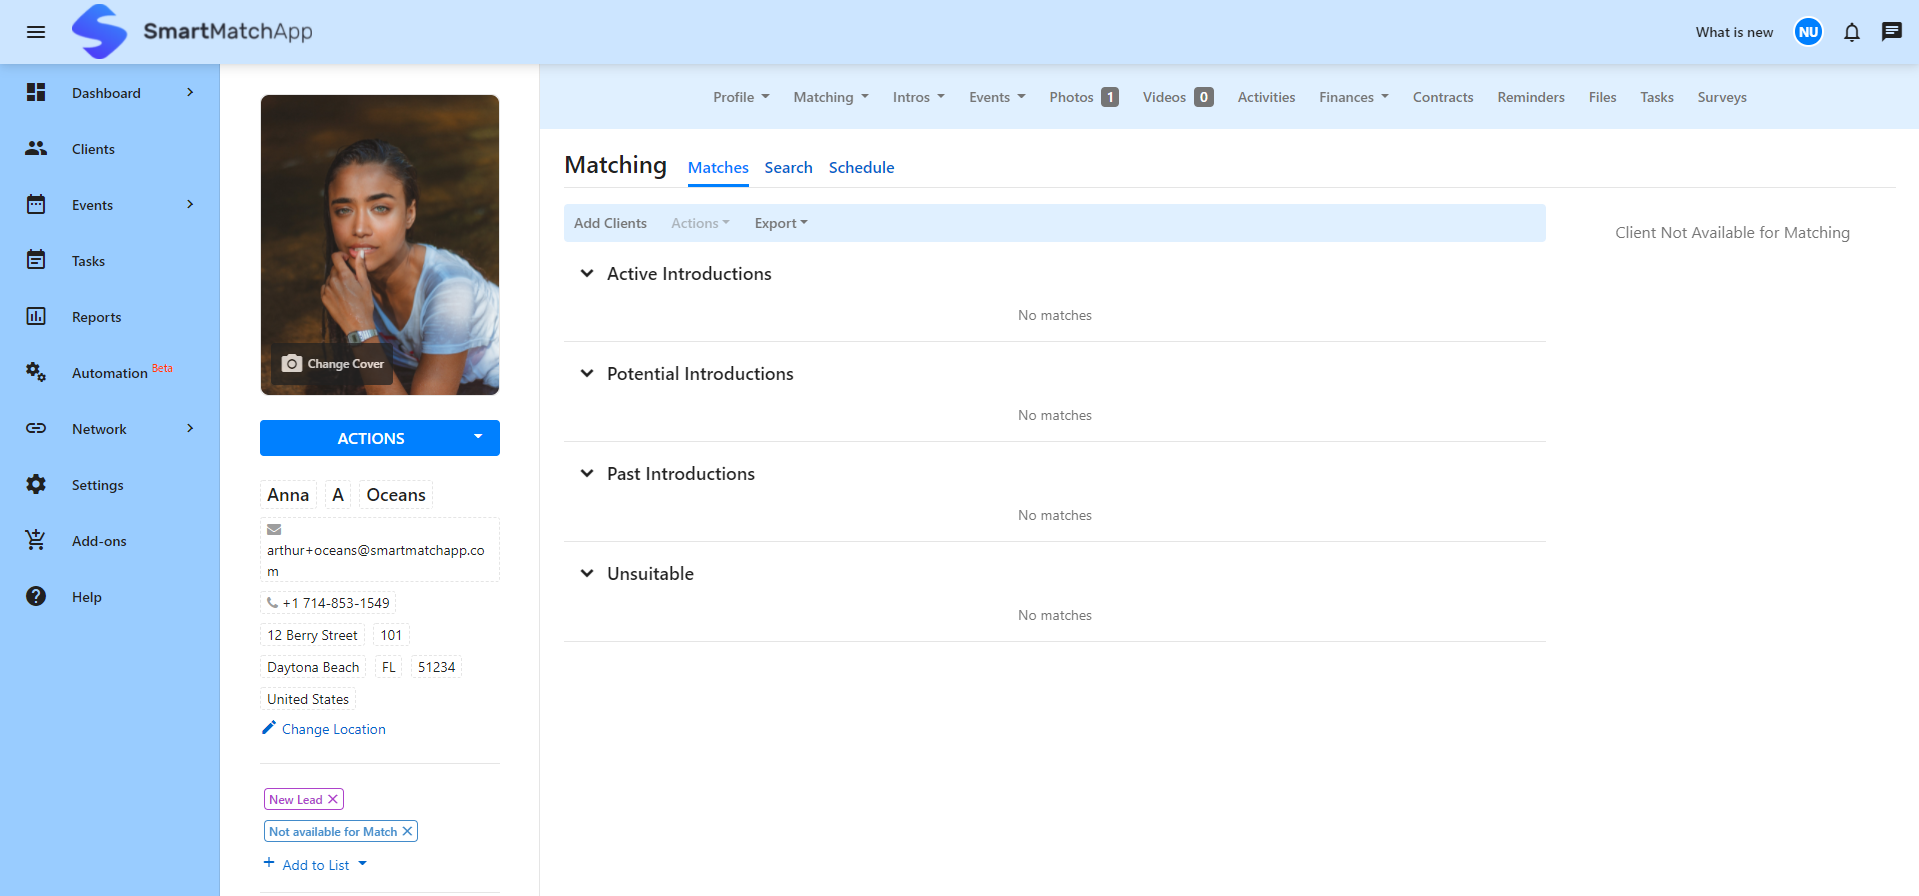 New features to increase efficiency and automate client matching process